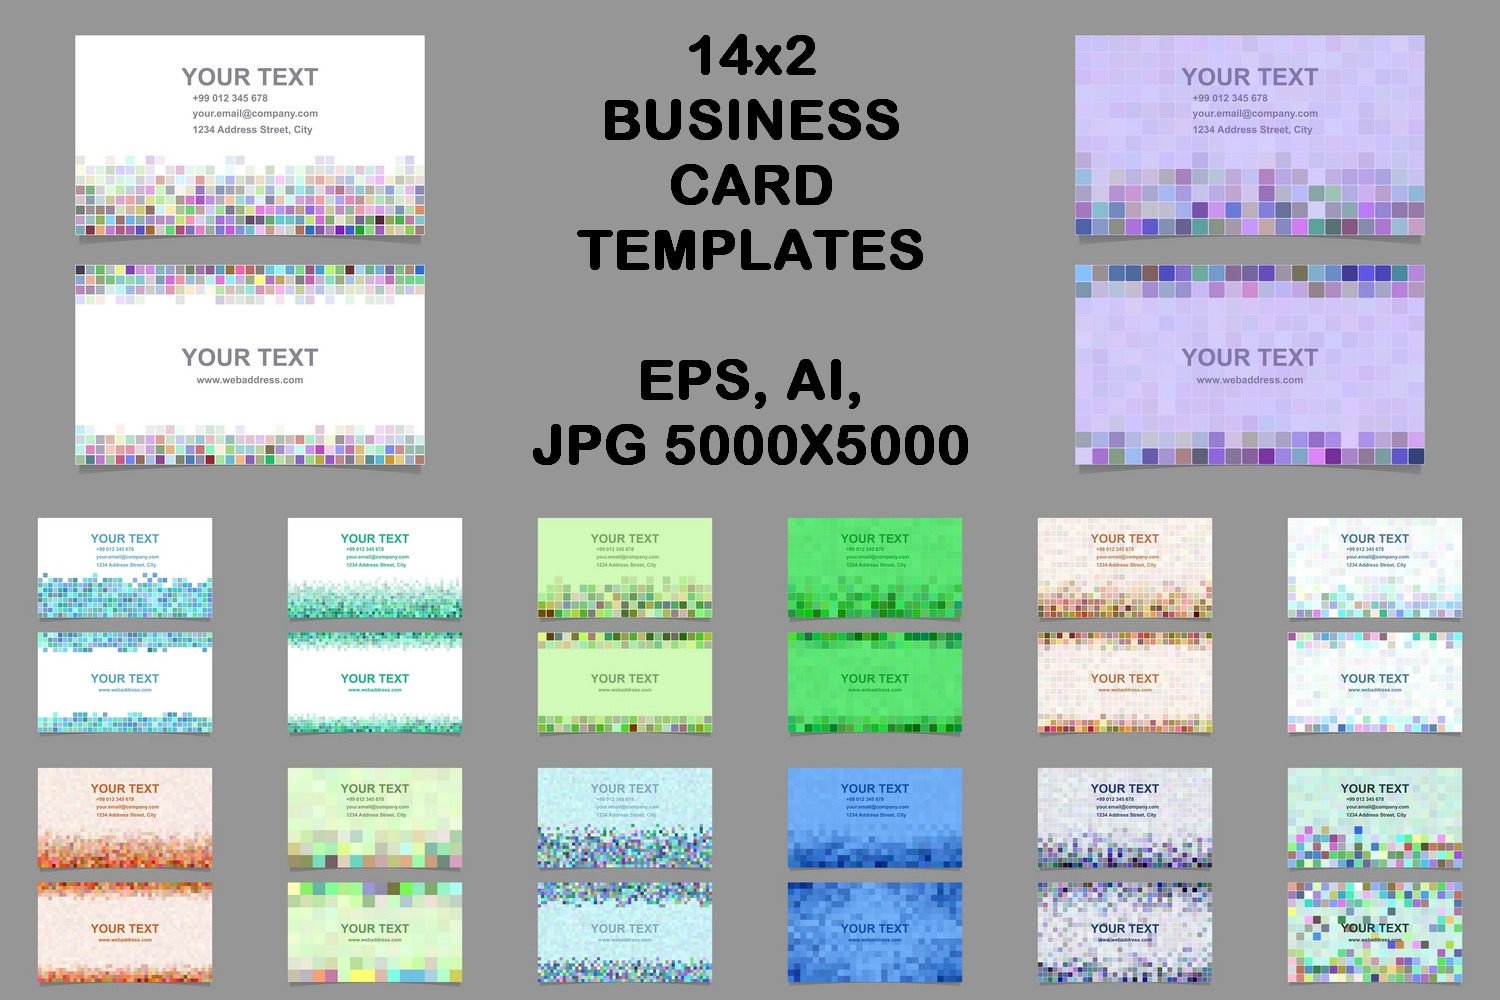 14x2 pixel mosaic business card templat design bundles 14x2 pixel mosaic business card templates eps ai jpg 5000x5000 example image cheaphphosting Image collections